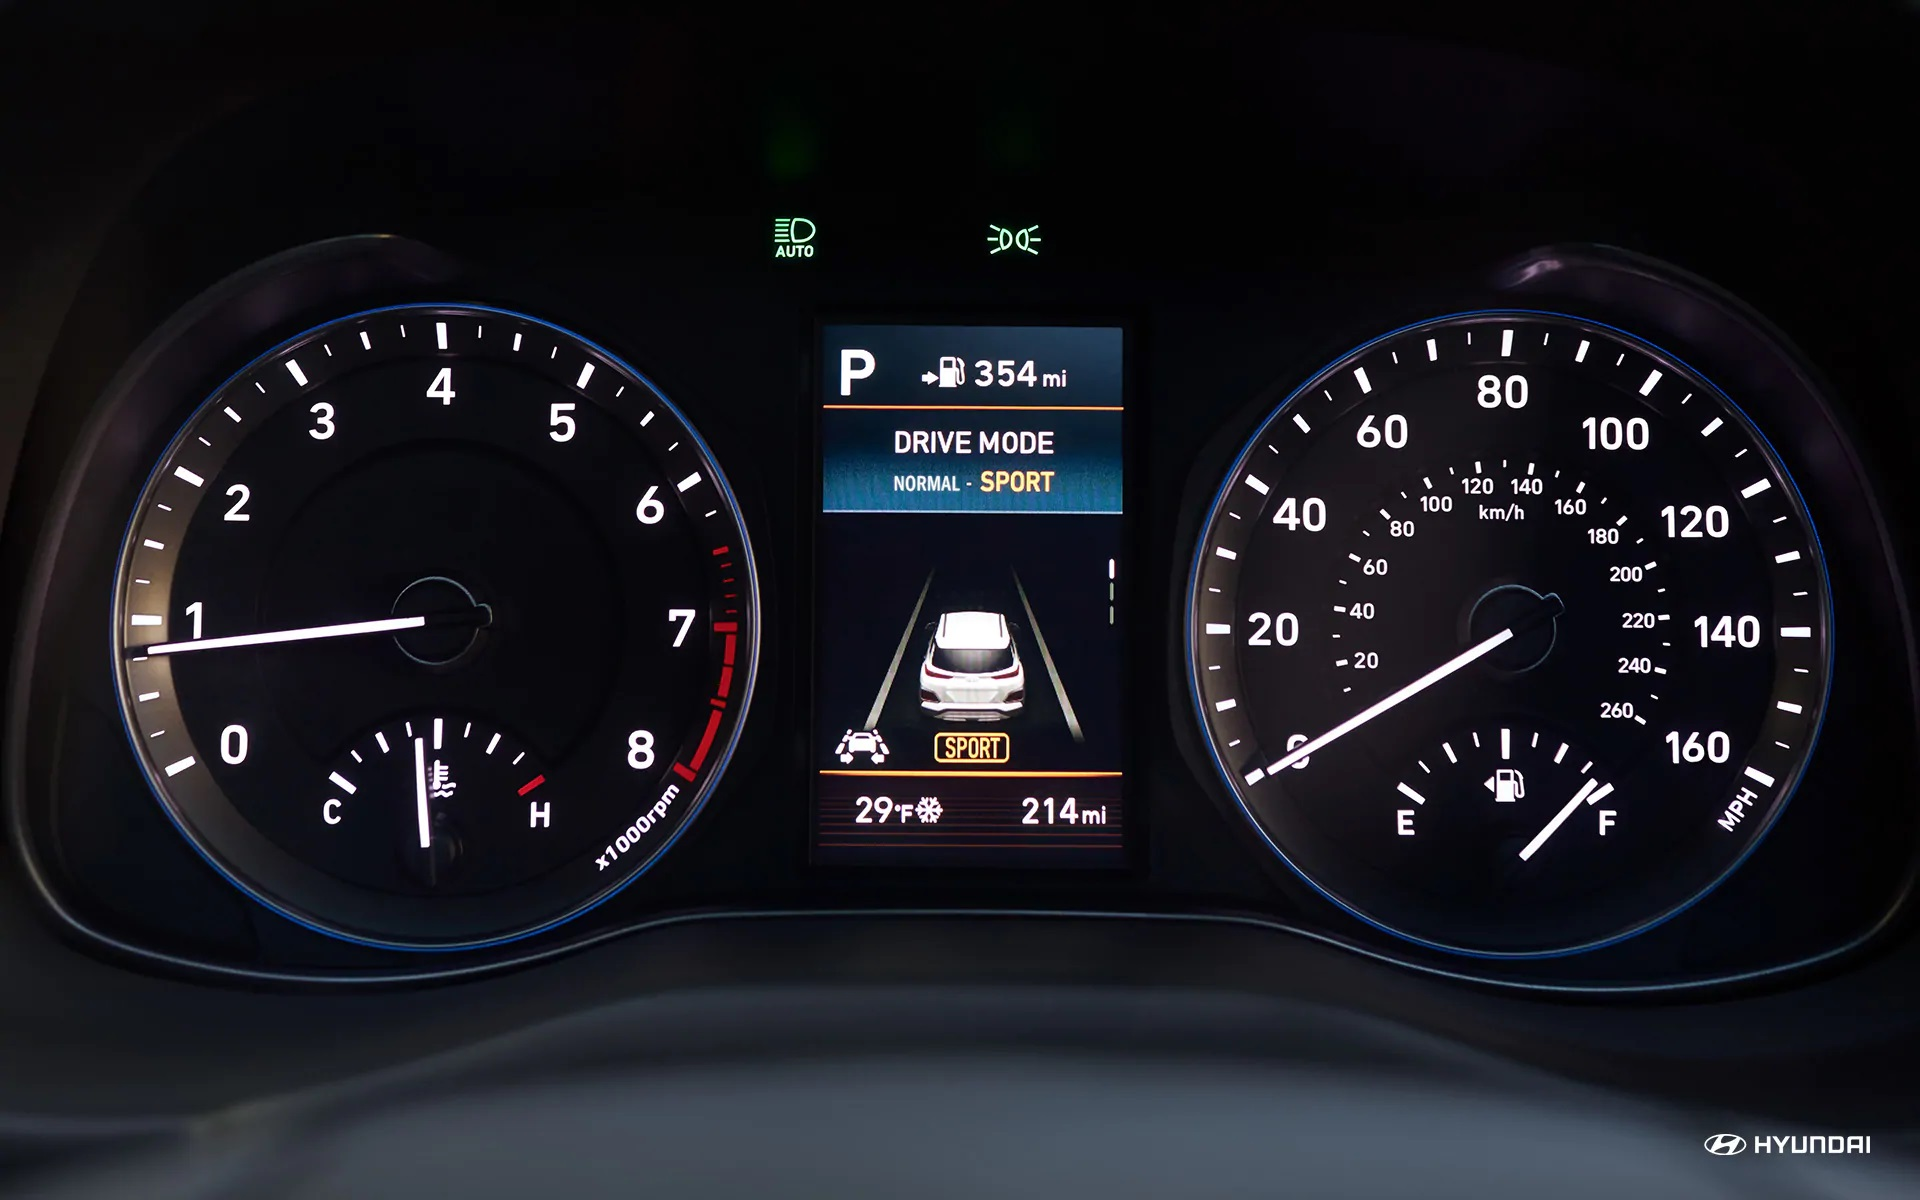 2019 Hyundai Kona Informational Display